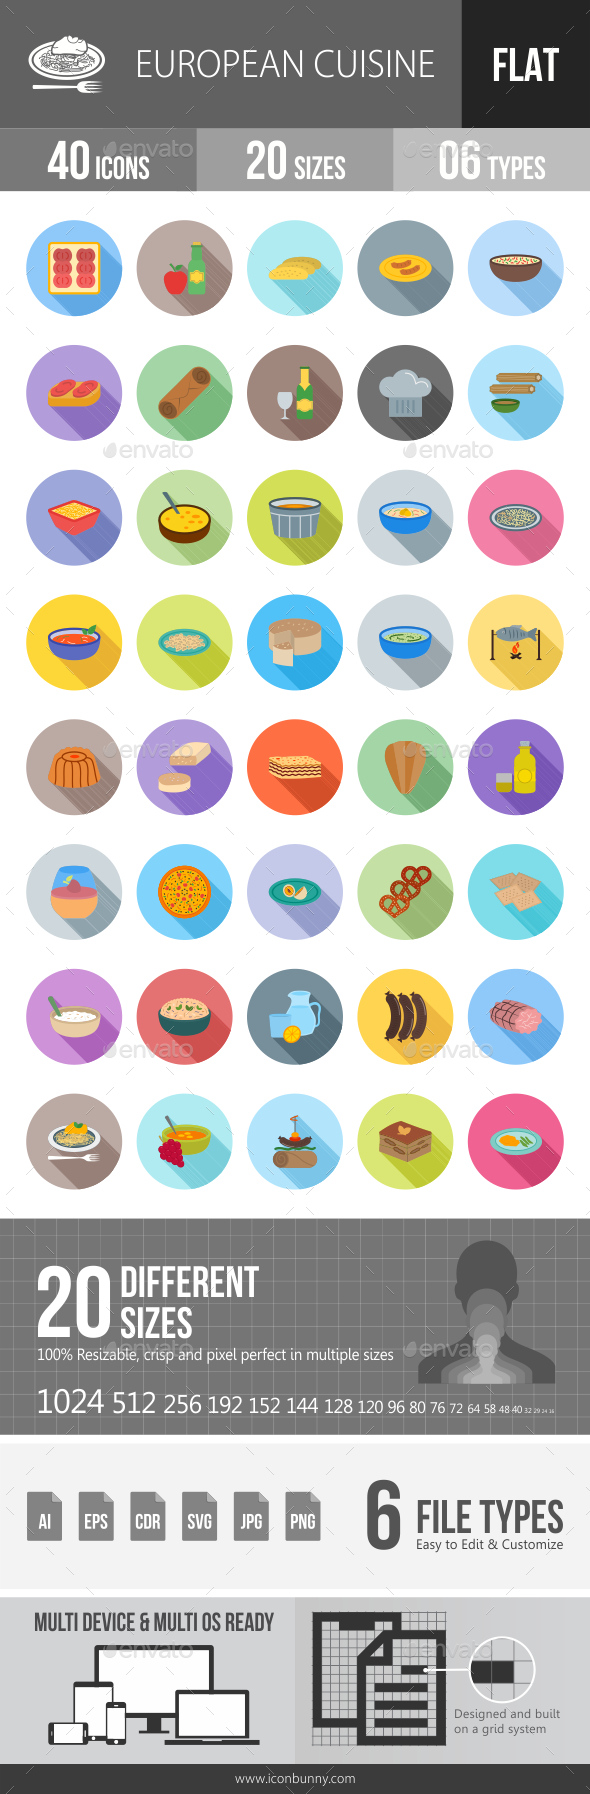 European Cuisine Flat Shadowed Icons - Icons